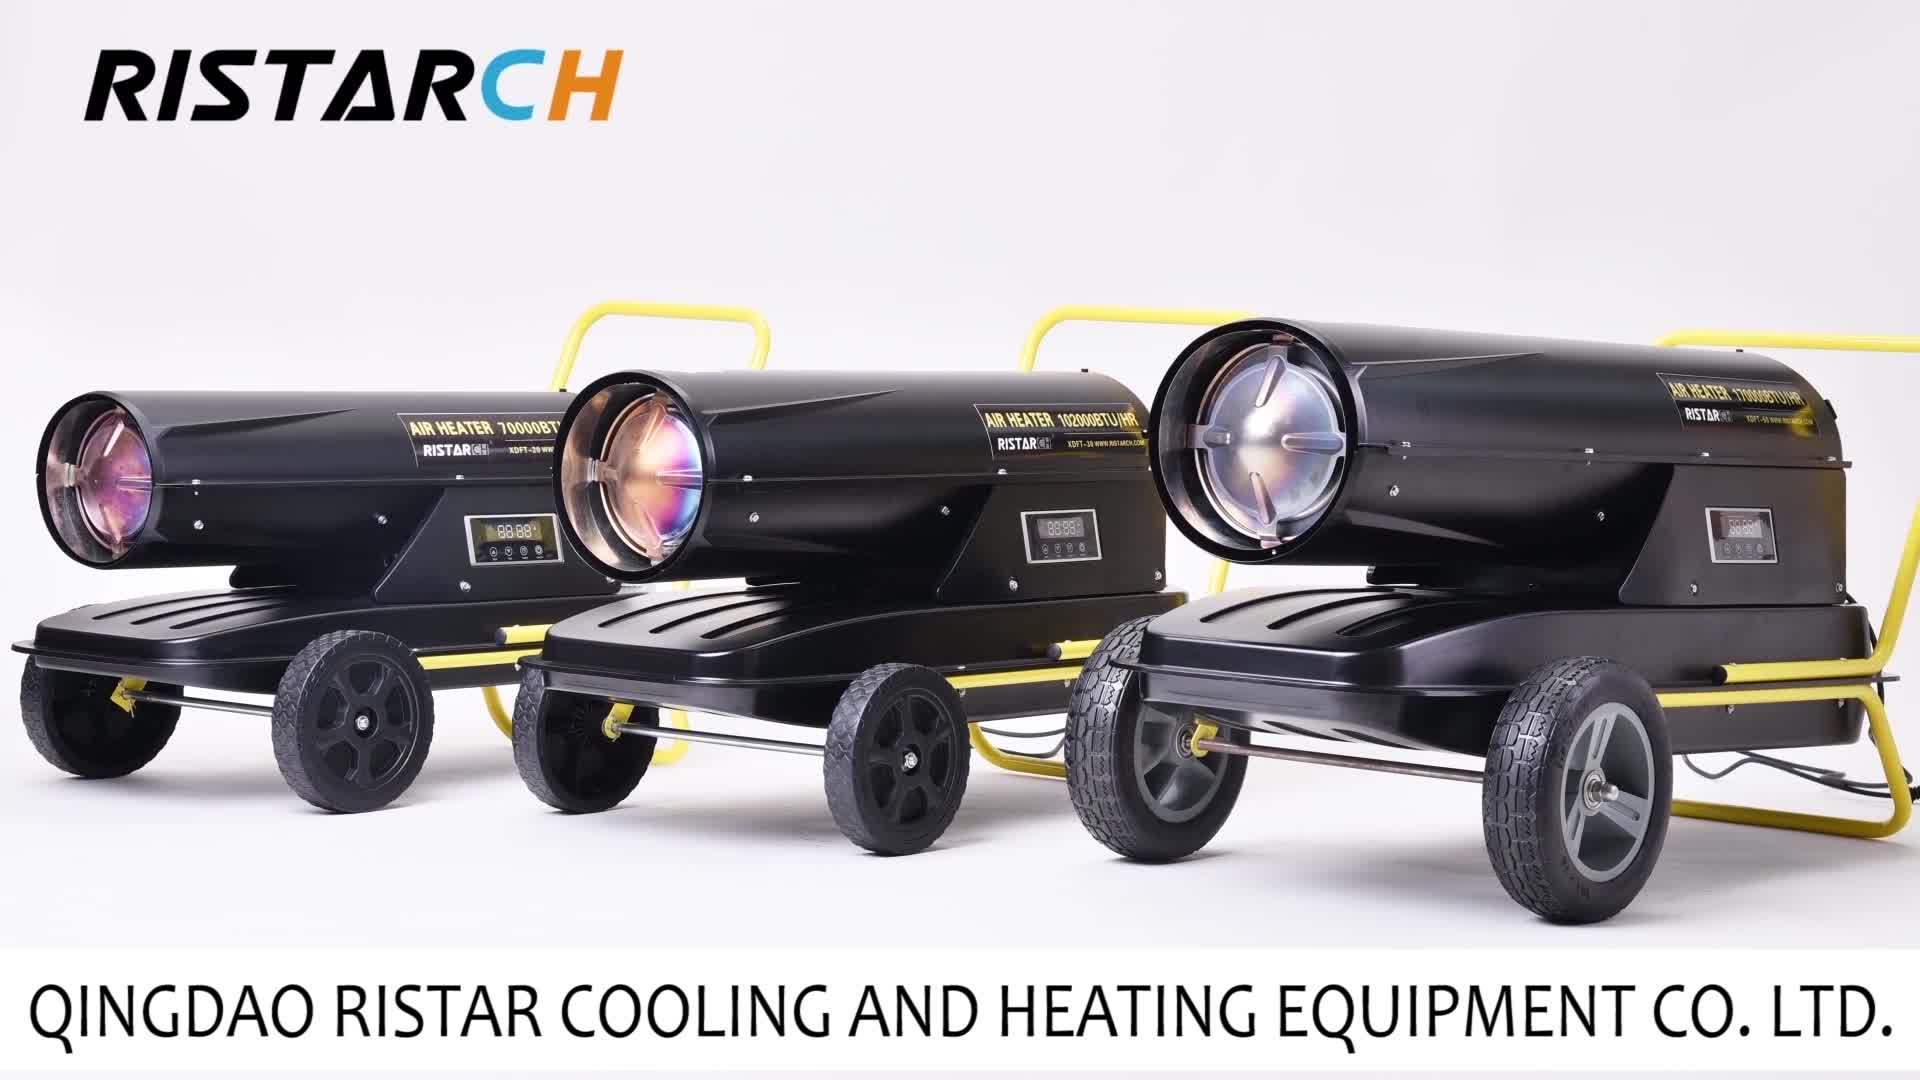 Industrial indirect Direct external thermostat kerosene Diesel Forced Air space Heater Fuel Air Heater